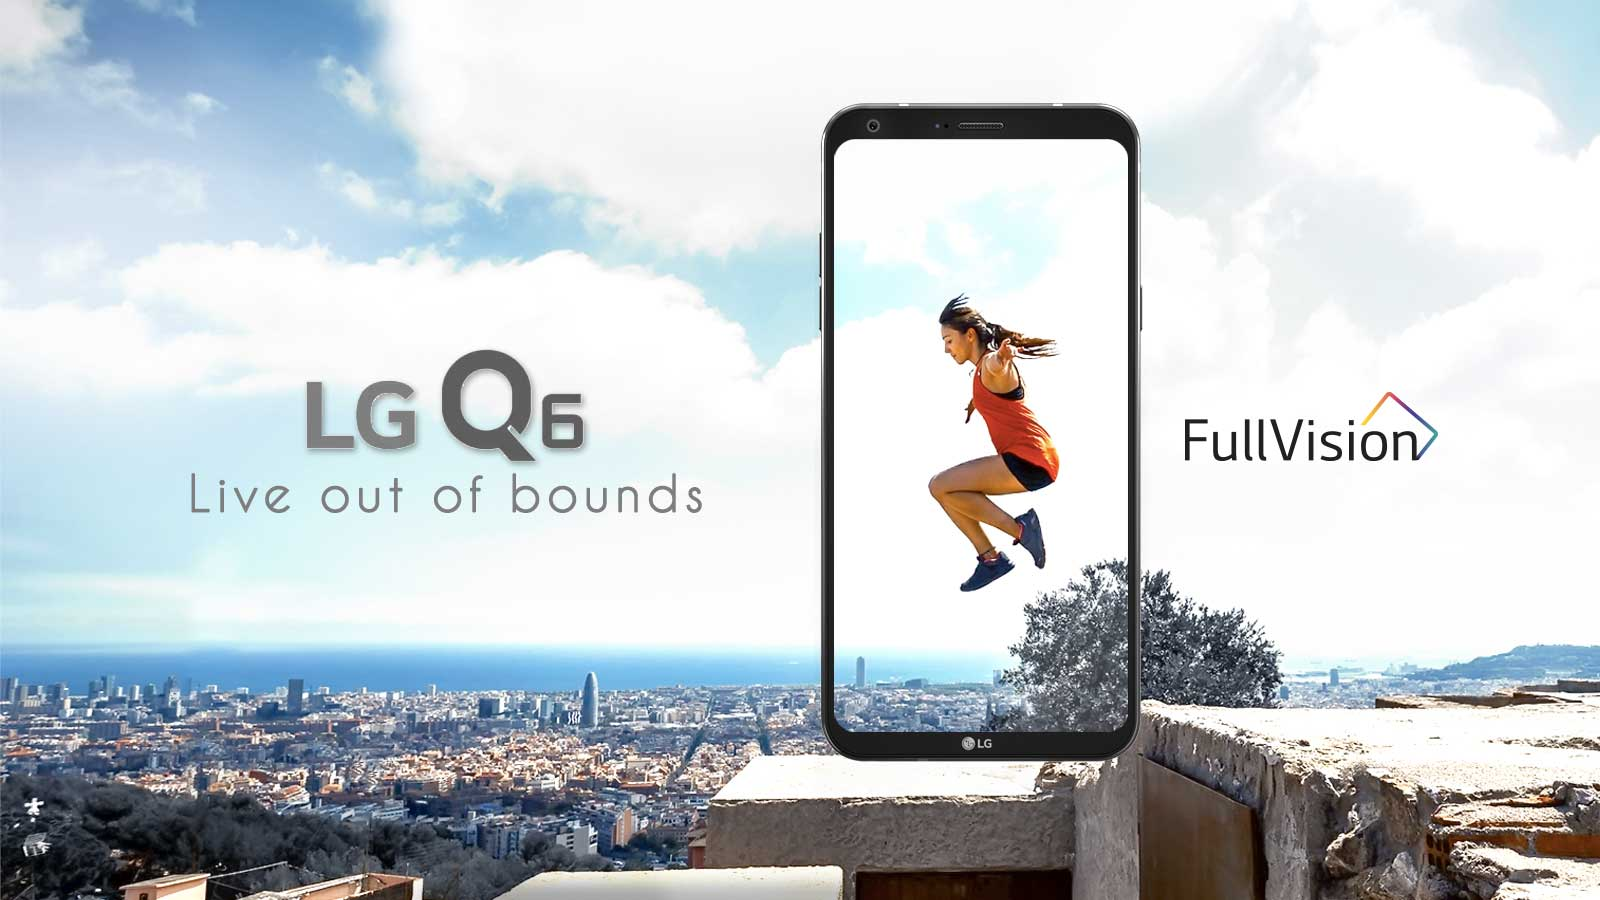 LG Q6 lands in the Philippines this August 18th